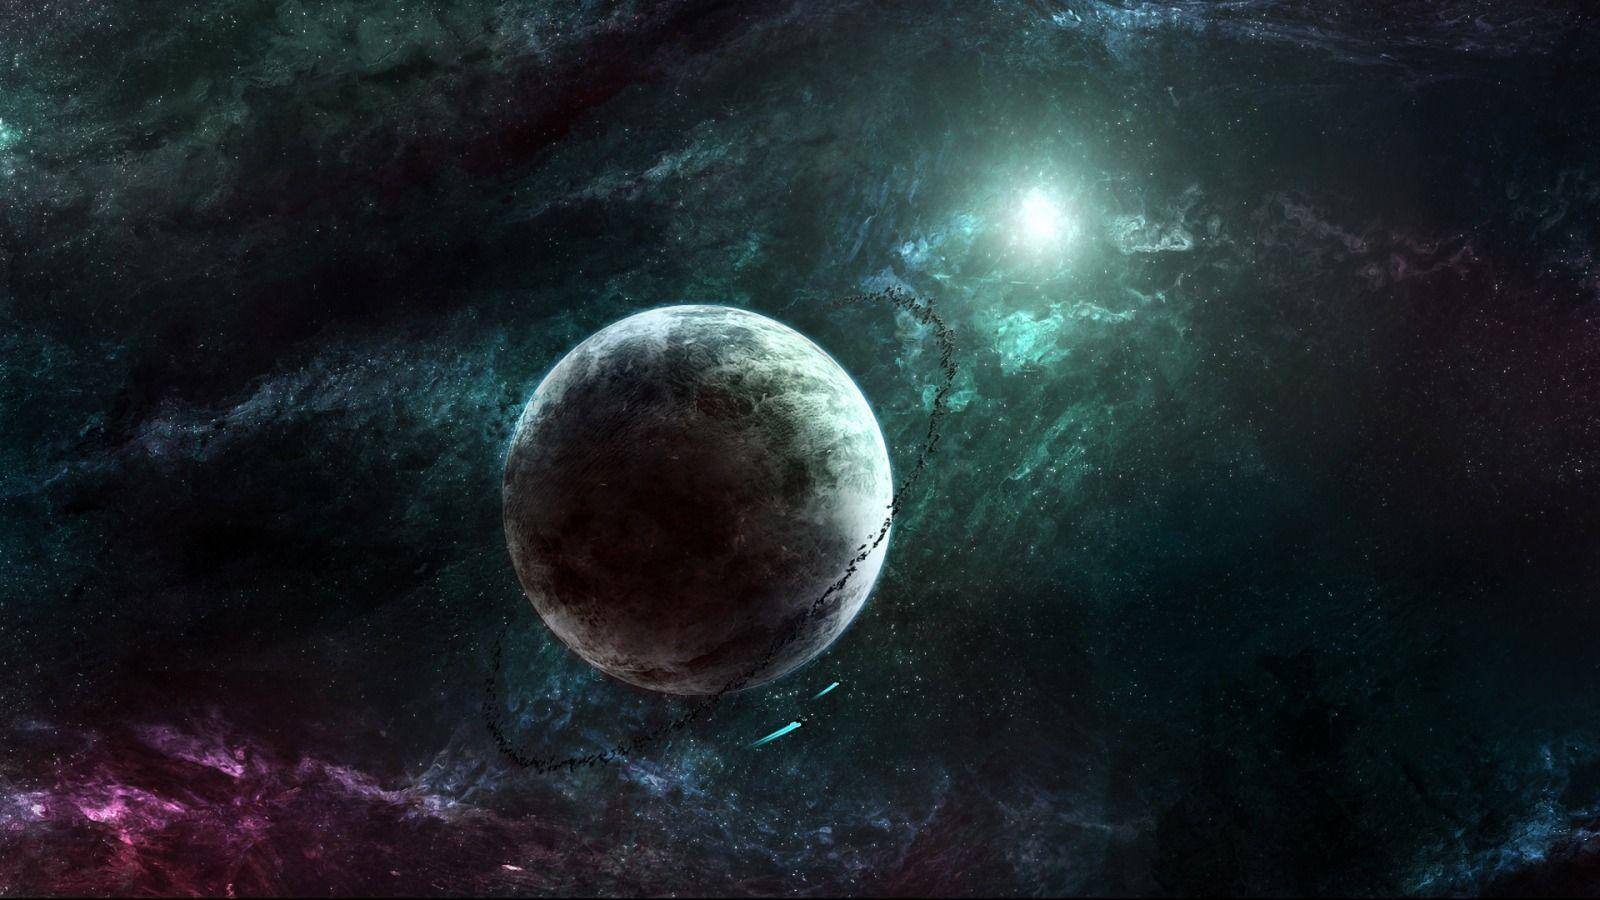 Hd Wallpapers Space Planets Background 1 HD Wallpapers   Hdwalljoy.